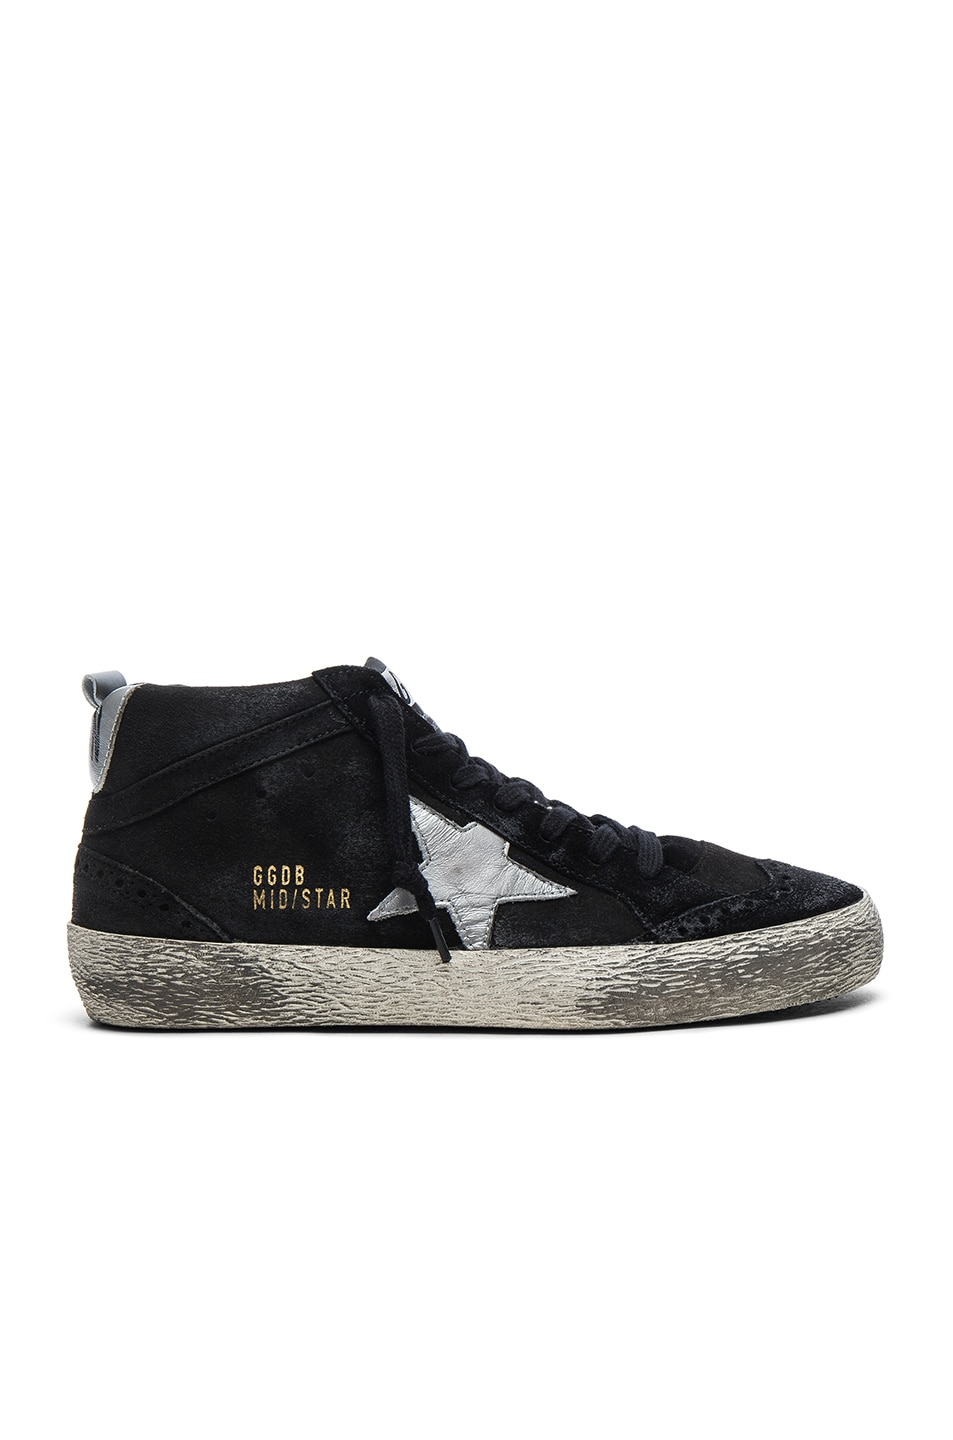 Image 1 of Golden Goose Suede Mid Star Sneakers in Black & Silver